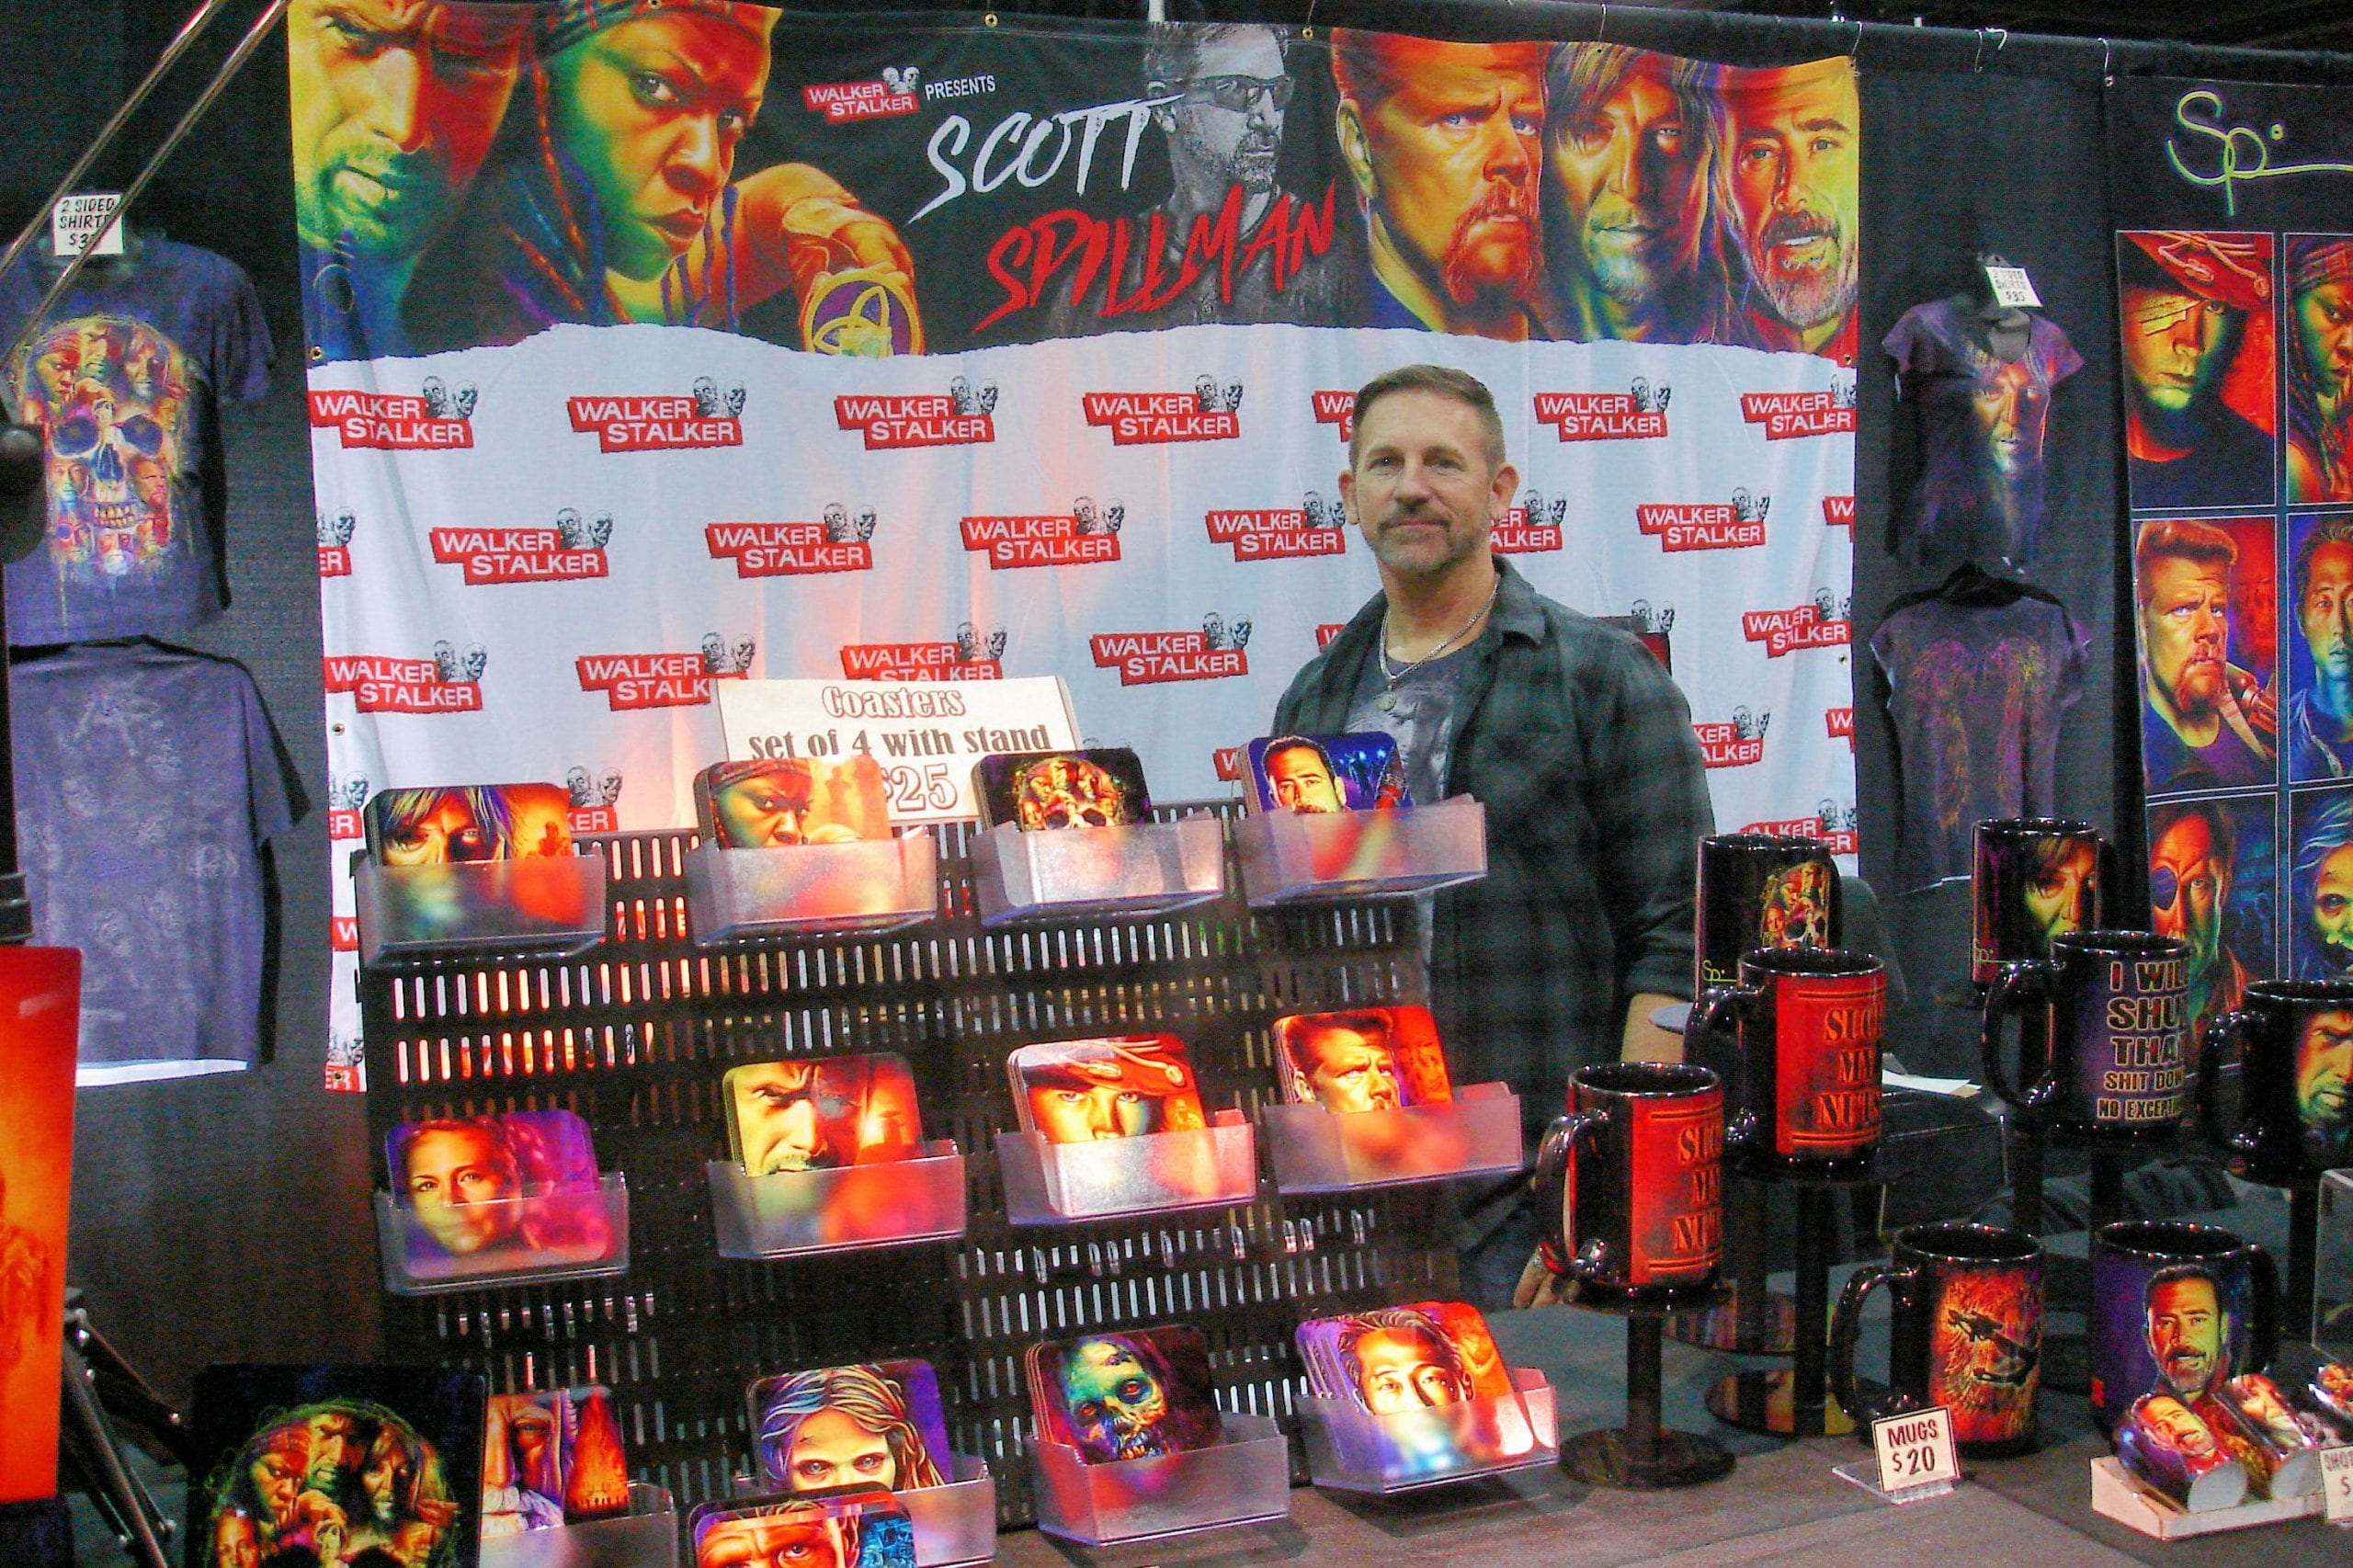 Scott Spillman, Fan Fest, Chicago